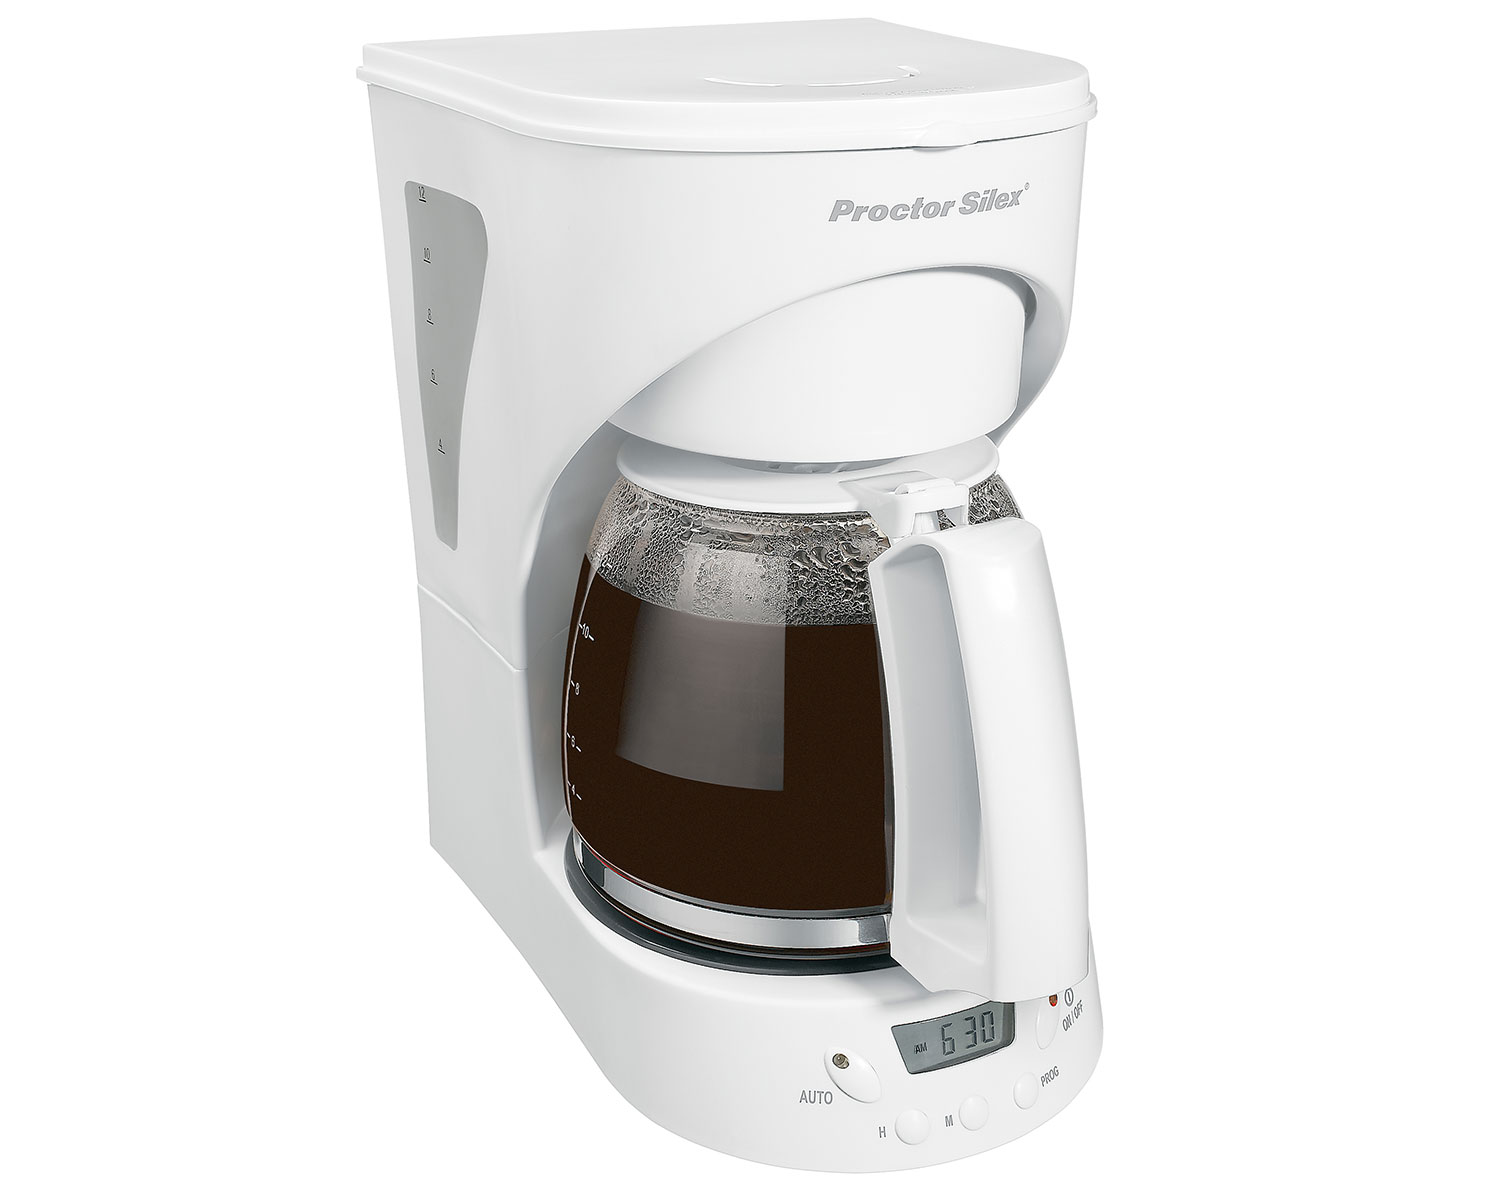 Programmable 12 Cup Coffee Maker (white)-43571Y Small Size